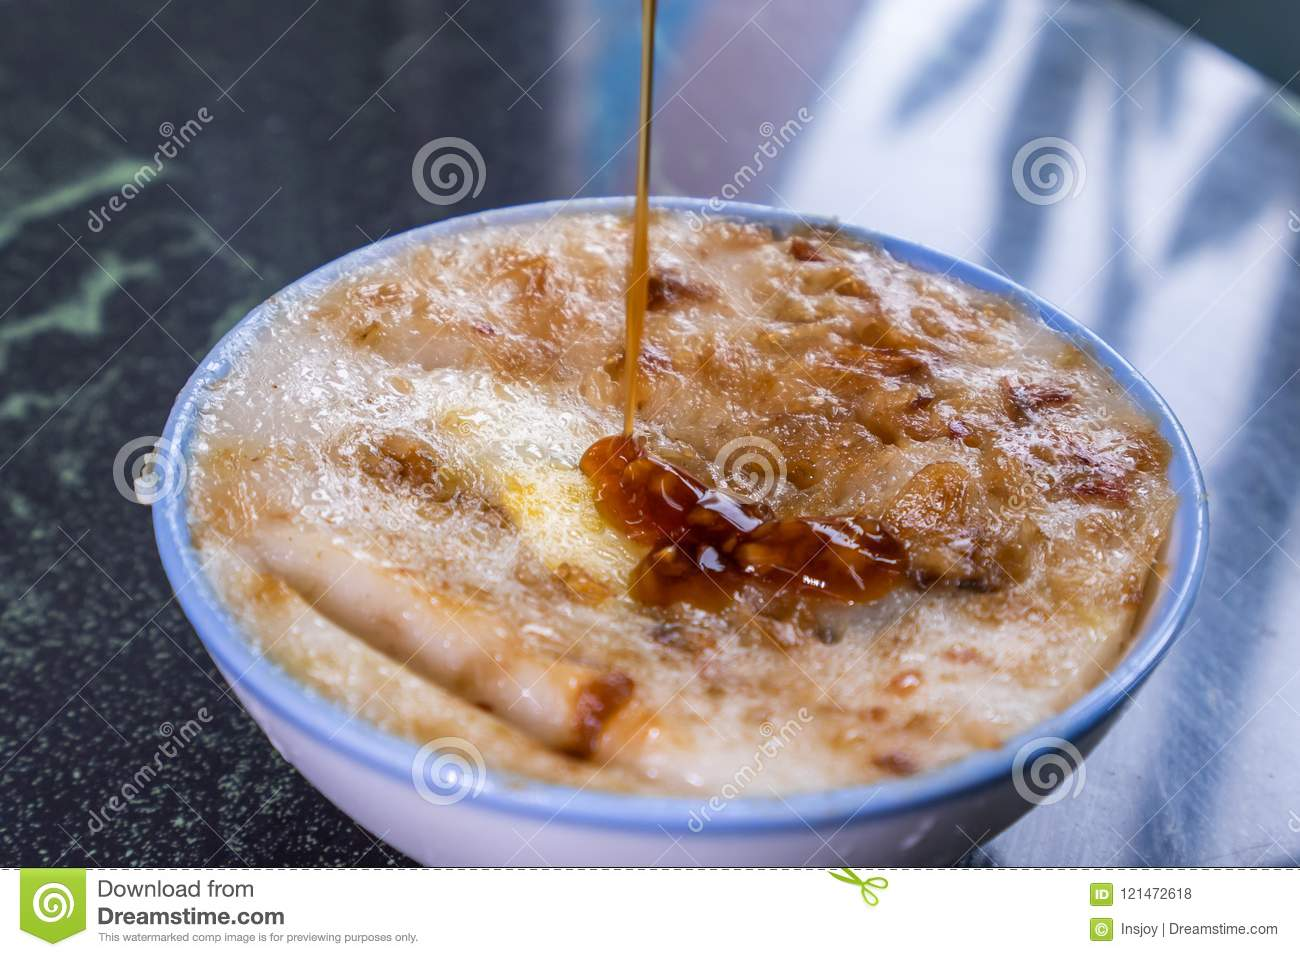 Taiwan`s distinctive famous snacks: Savory rice pudding Wa gui in a white bowl on stone table, Taiwan Delicacies